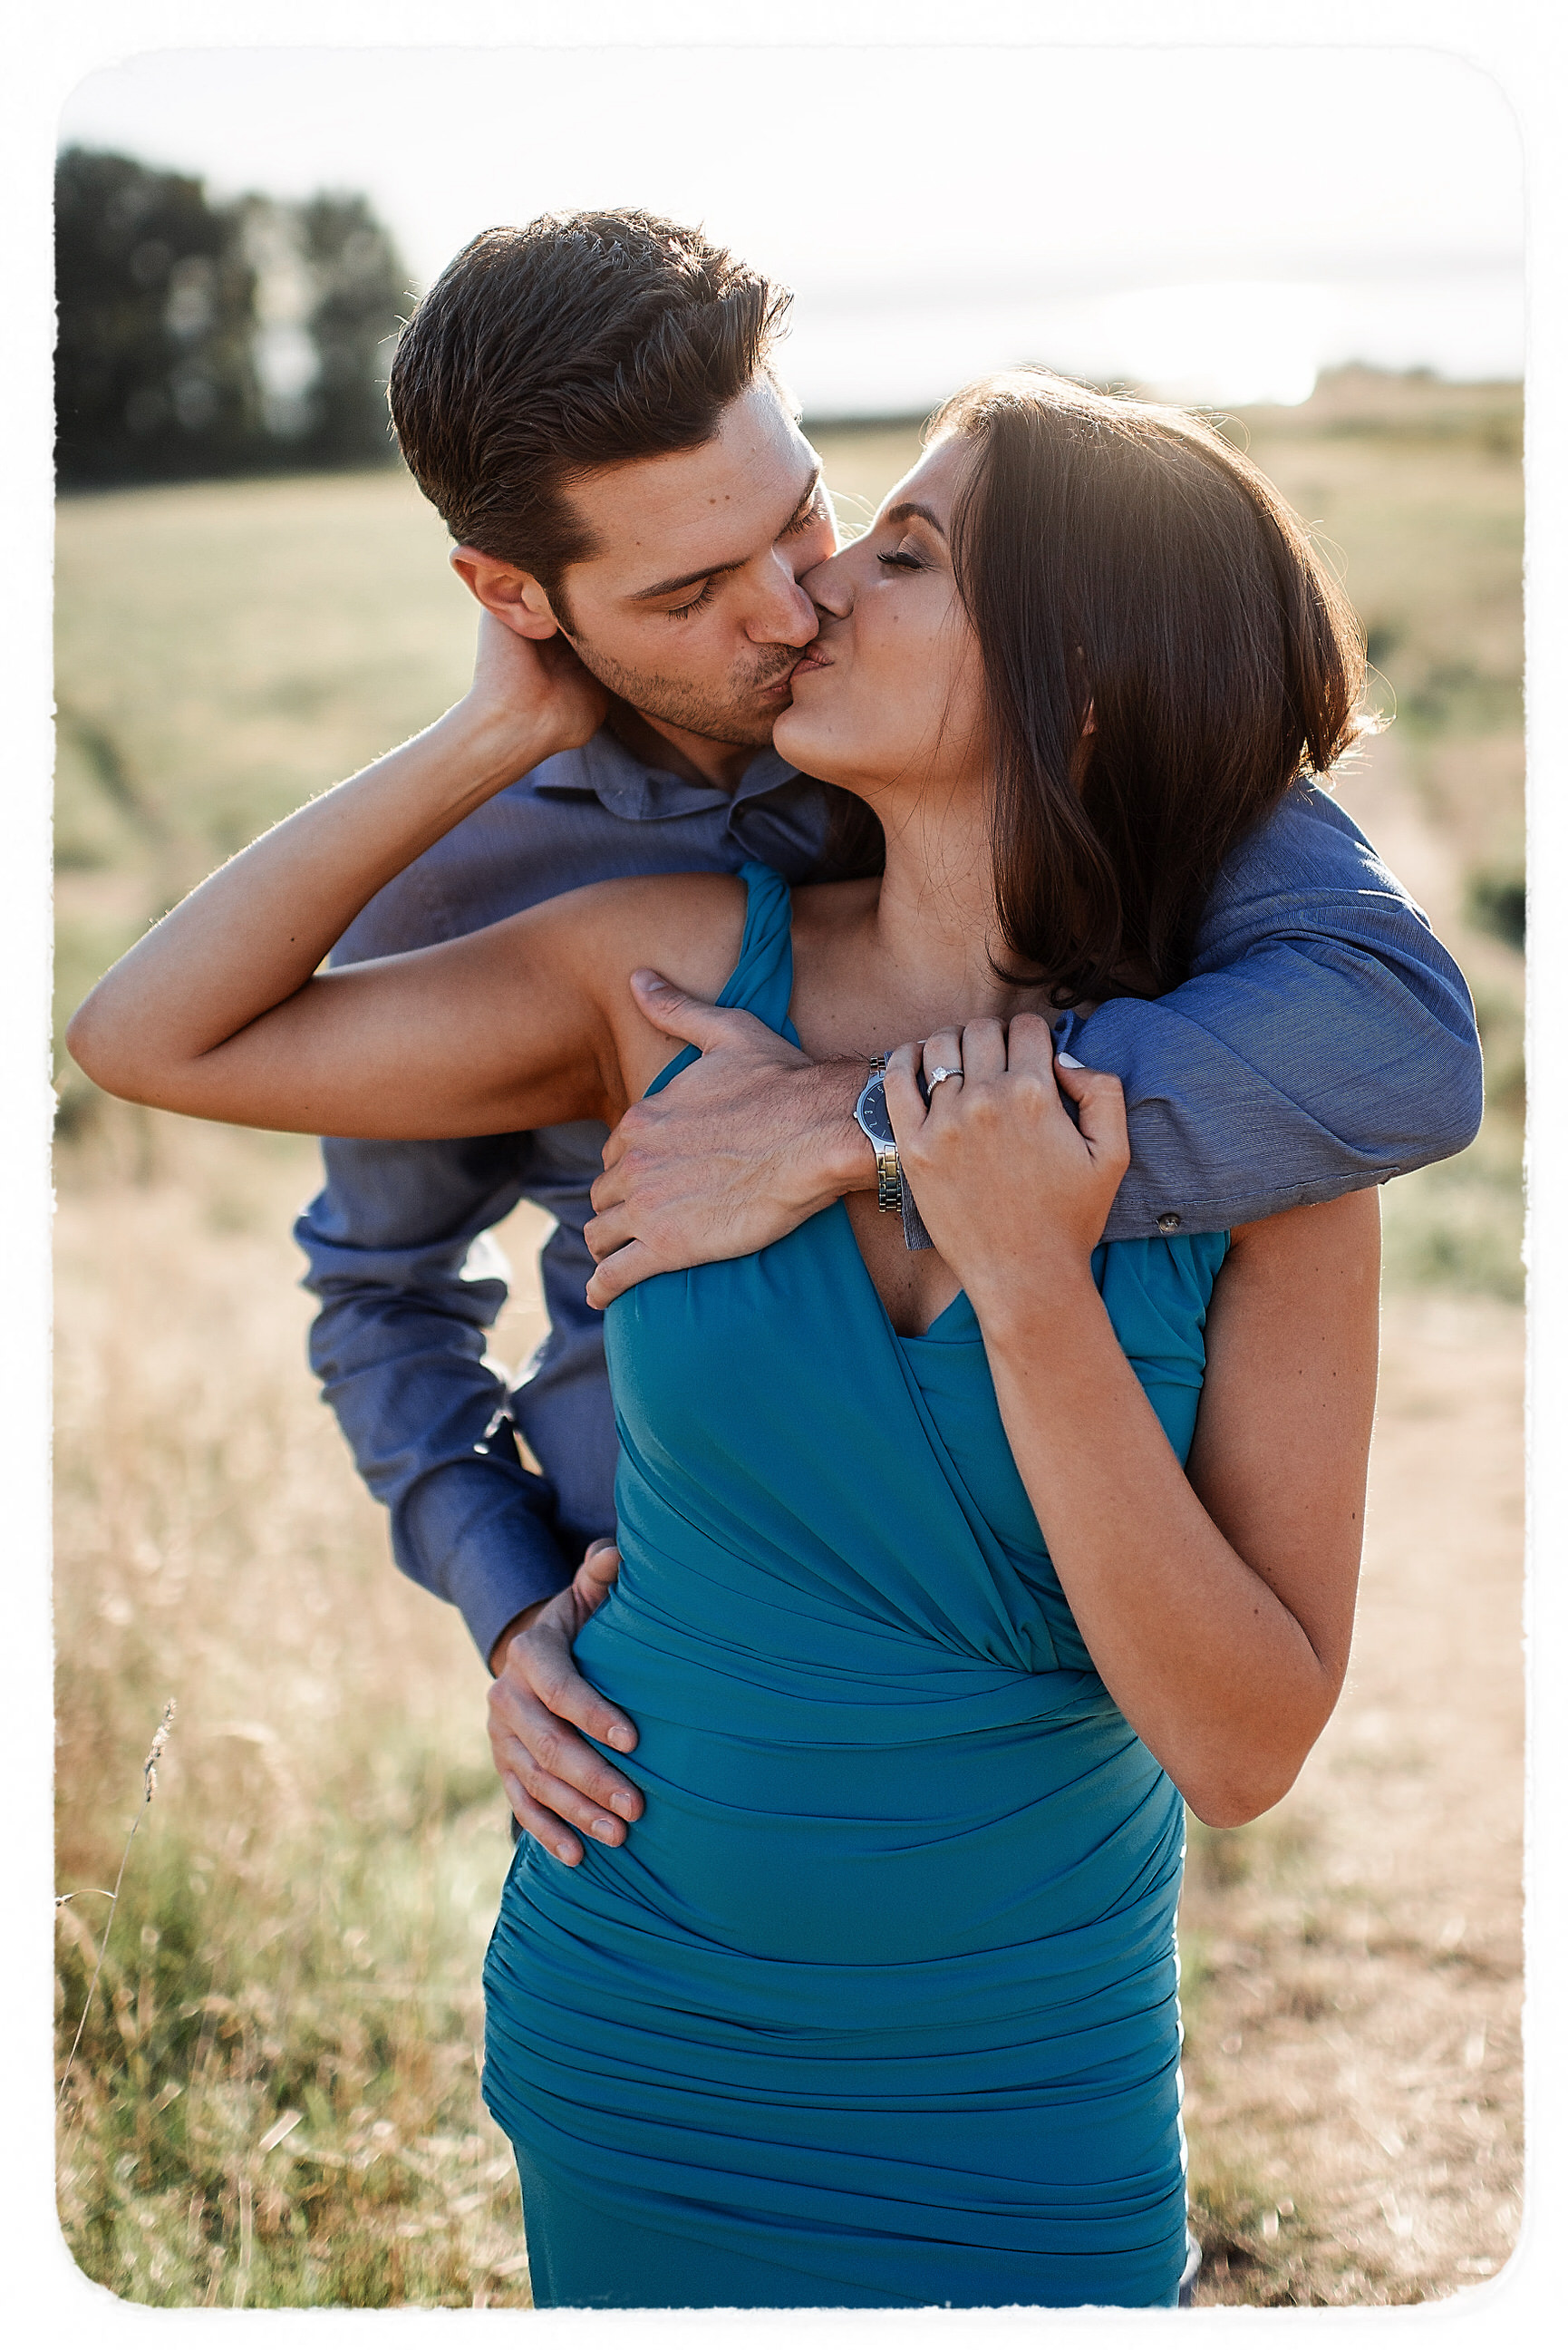 Kelly&Mike-EngagementSession-OriginalCollection-68Film.jpg